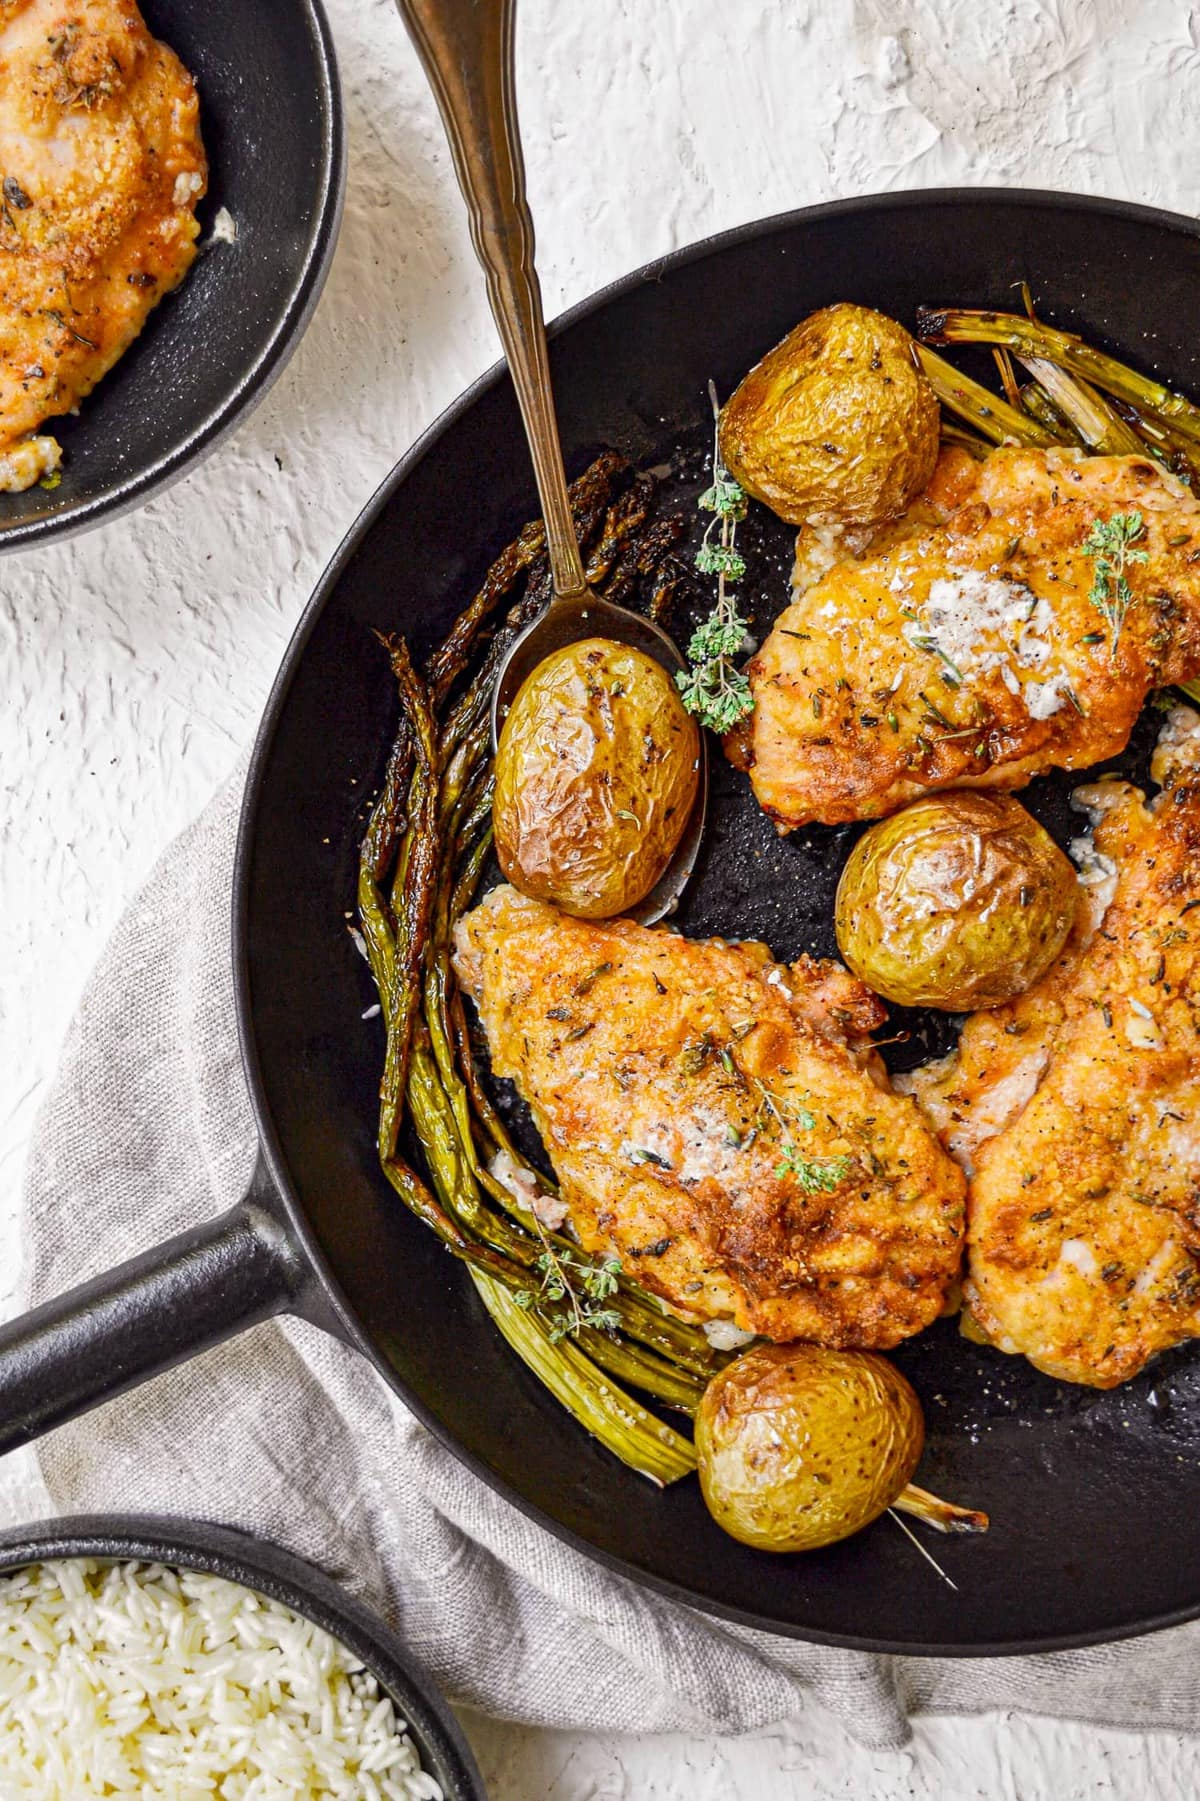 baked chicken with asparagus and potatoes